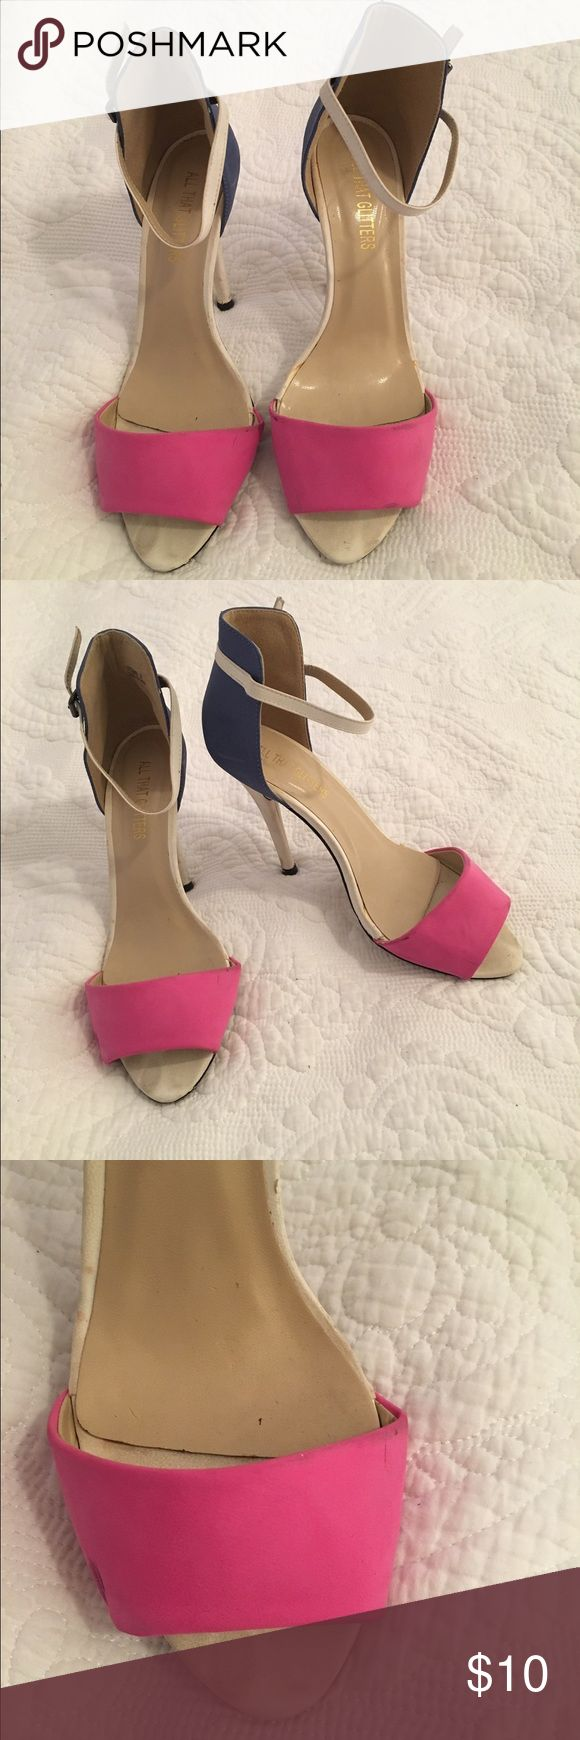 Strapped Color Block Heels ADORABLE pink/blue/white strappy heels.  Not sure what size 37 technically is, but I am a size 8/8.5 and these fit great. -- PREVIOUSLY LOVED -- A few scratches, but there's still a lot of life left in these!  Great for parties or going out - you'll get lots of compliments!!  No smoking / No pets home. All That Glitters Shoes Heels